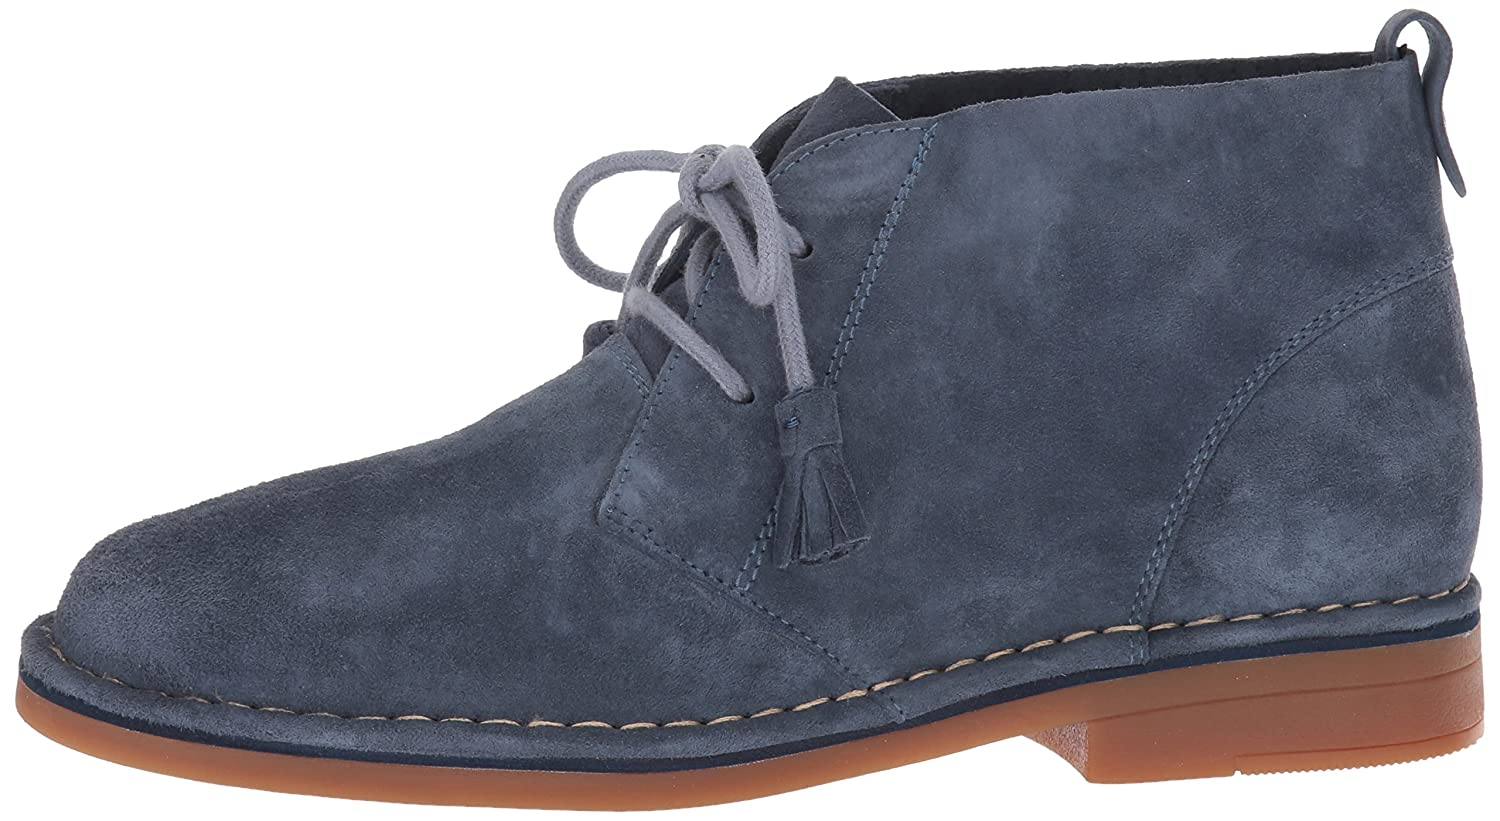 Hush Puppies Women's Cyra Catelyn Ankle Boot B0746XDSW8 7 W US|Vintage Indigo